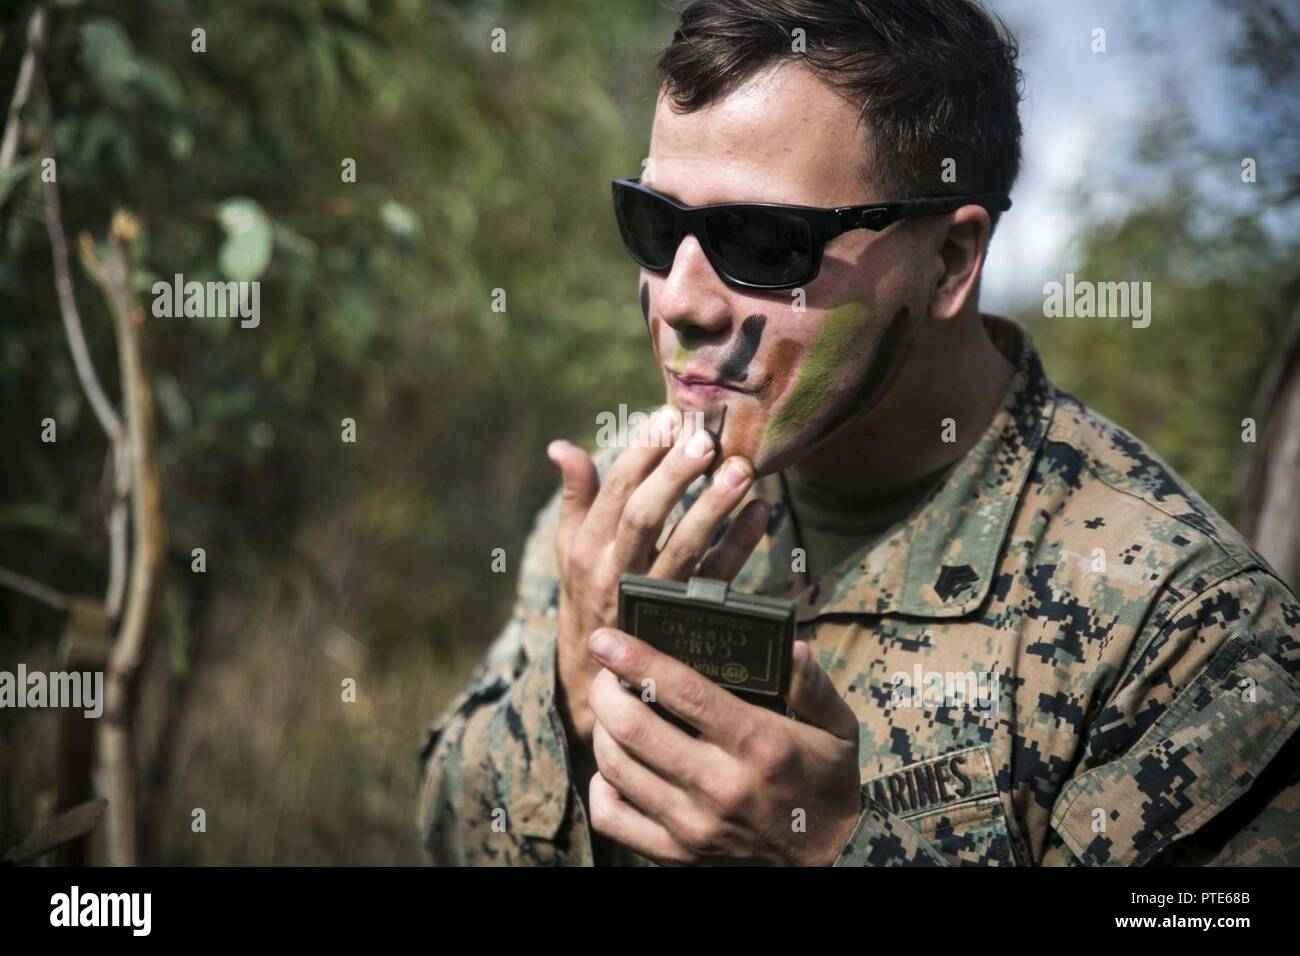 U.S. Marine Corps Sgt. Thomas J. Hudson, a squad leader with the 1st Platoon, India Company, Battalion Landing Team, 3rd Battalion, 5th Marines, 31st Marine Expeditionary Unit, applies camouflage paint during Exercise Talisman Saber 17 in the Australia Defense Force's Townshend Island Training Area, Queensland, Australia, July 14, 2017. The company's simulated mission included clearing and securing the training area. India Company is the mechanized raid company for the 31st MEU, currently supporting Talisman Saber 17 while deployed on its scheduled patrol of the Indo-Asia-Pacific region. Talis - Stock Image